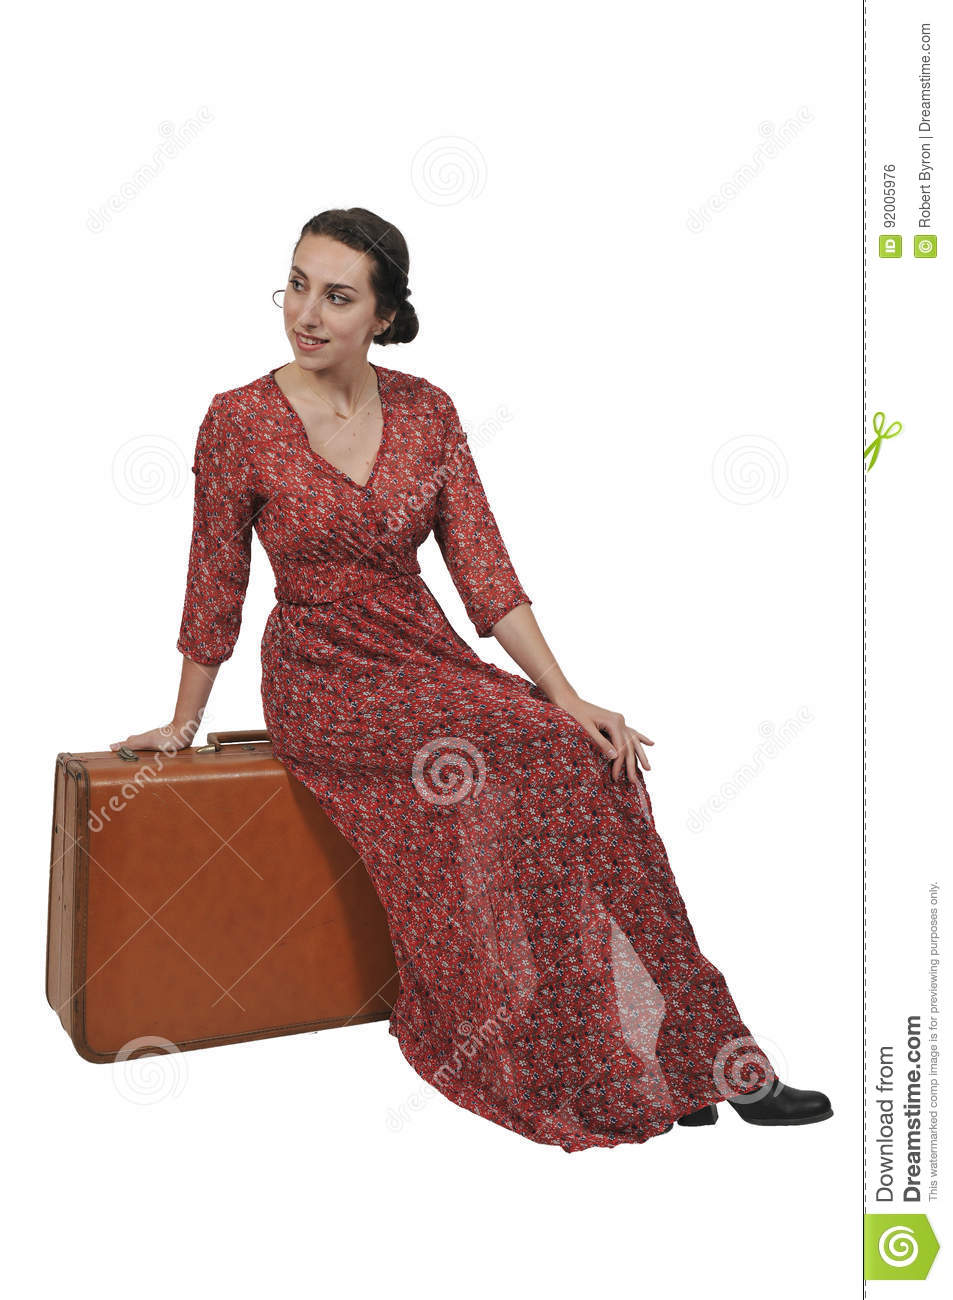 Woman on or going on vacation